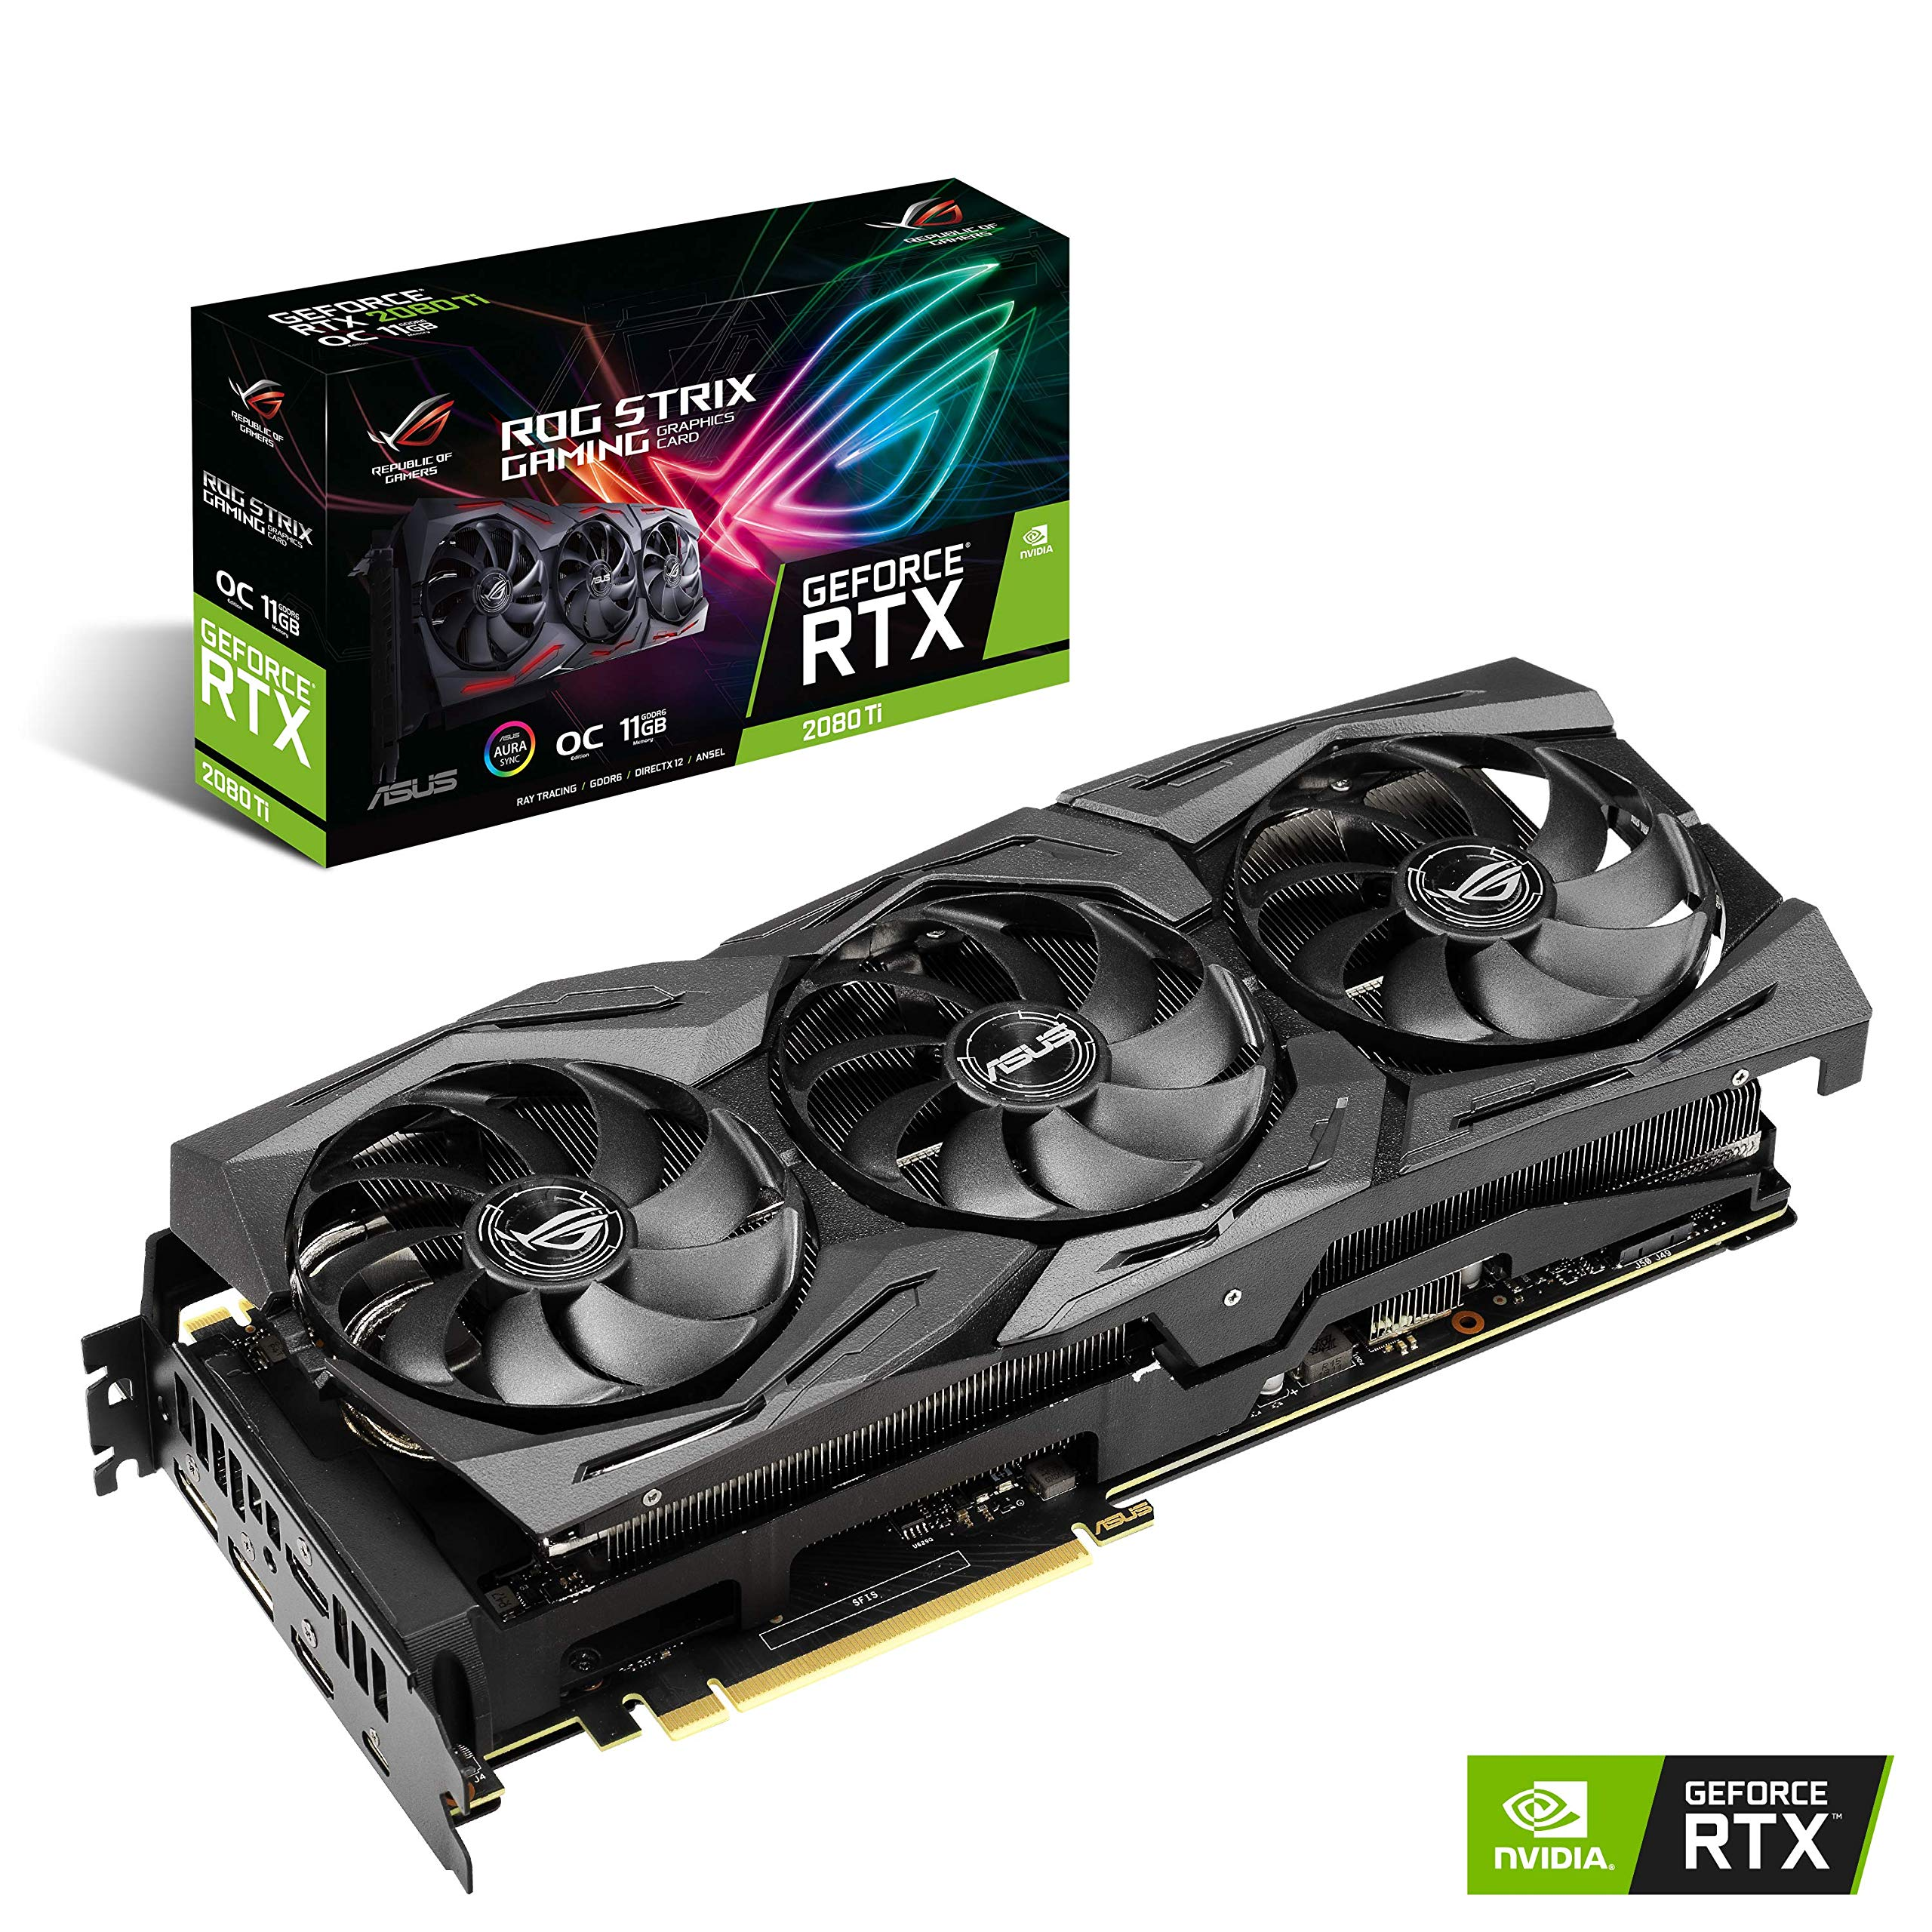 ASUS ROG Strix GeForce RTX 2080TI Overclocked 11G GDDR6 HDMI DP 1.4 USB Type-C Gaming Graphics Card (ROG-STRIX-RTX-2080TI-O11G) by ASUS (Image #1)